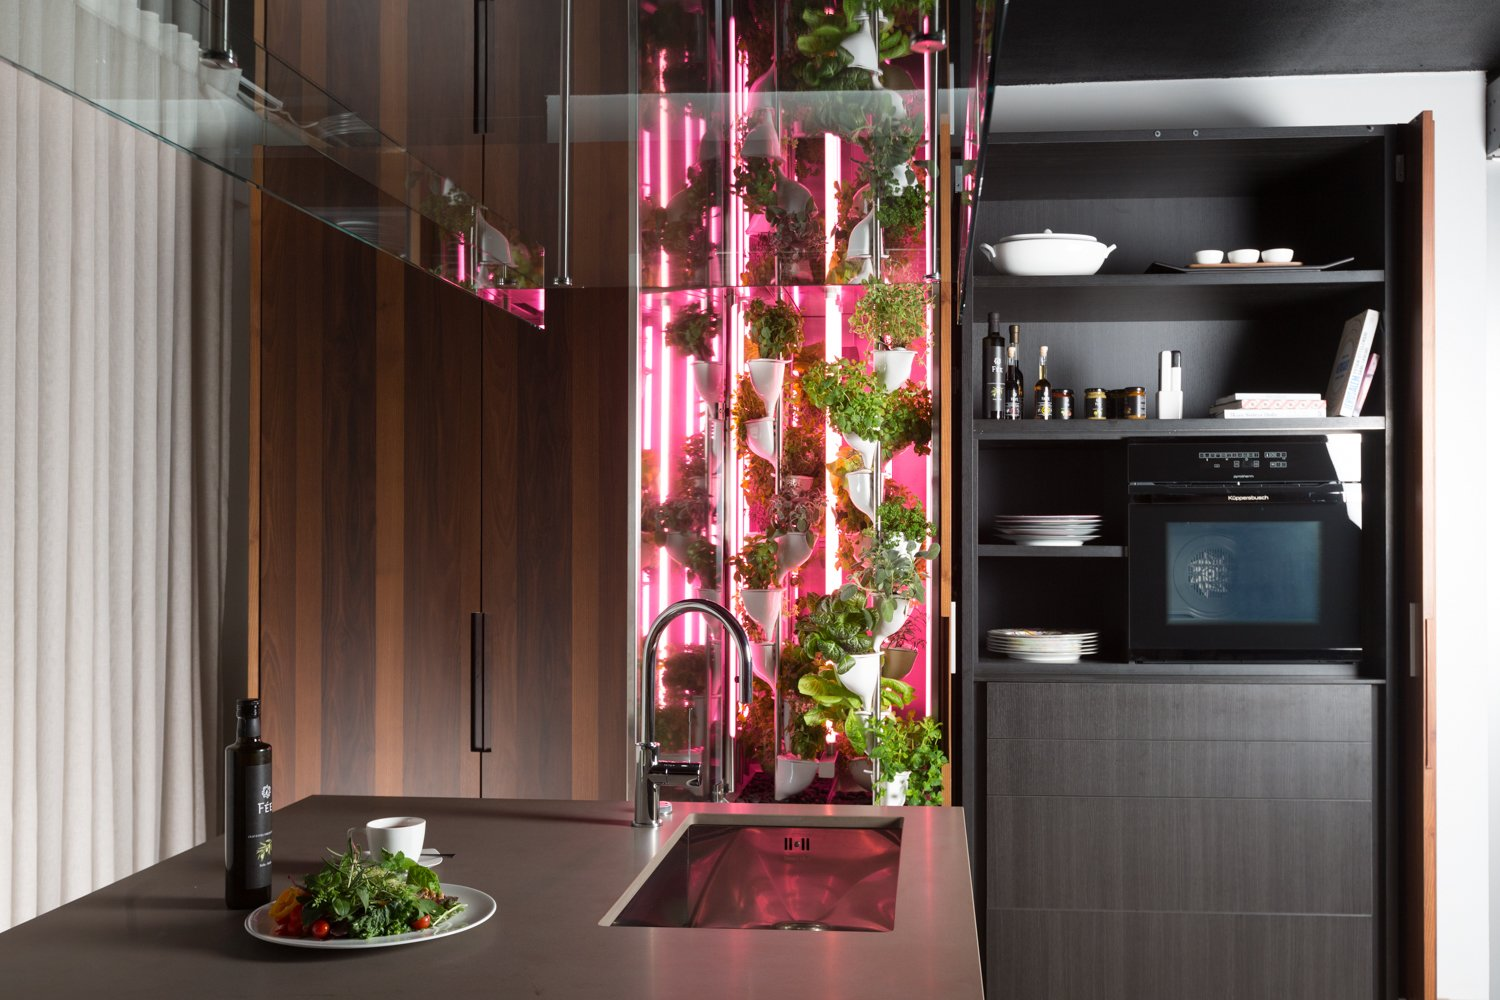 Natufia Hydroponic Kitchen Garden  Photo 5 of 10 in Trend Report: The Internet Settles Into Our Appliances